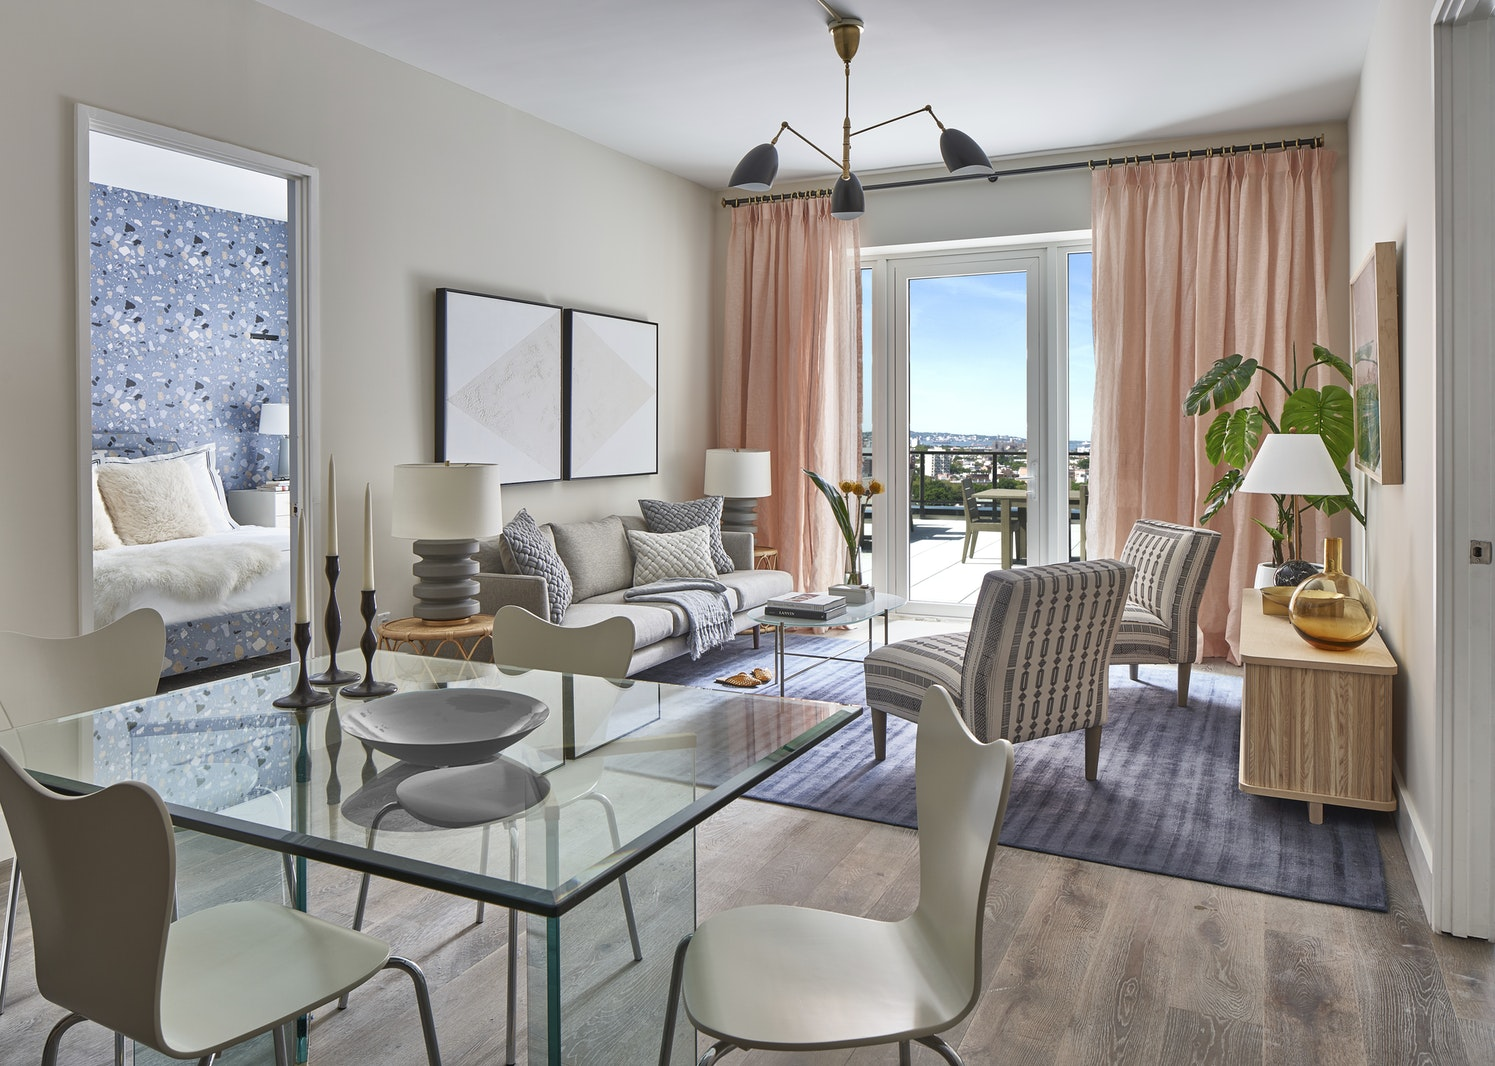 10 Nevins Street 3a, Downtown Brooklyn, Brooklyn, NY, 11217, $1,295,000, Property For Sale, Halstead Real Estate, Photo 3